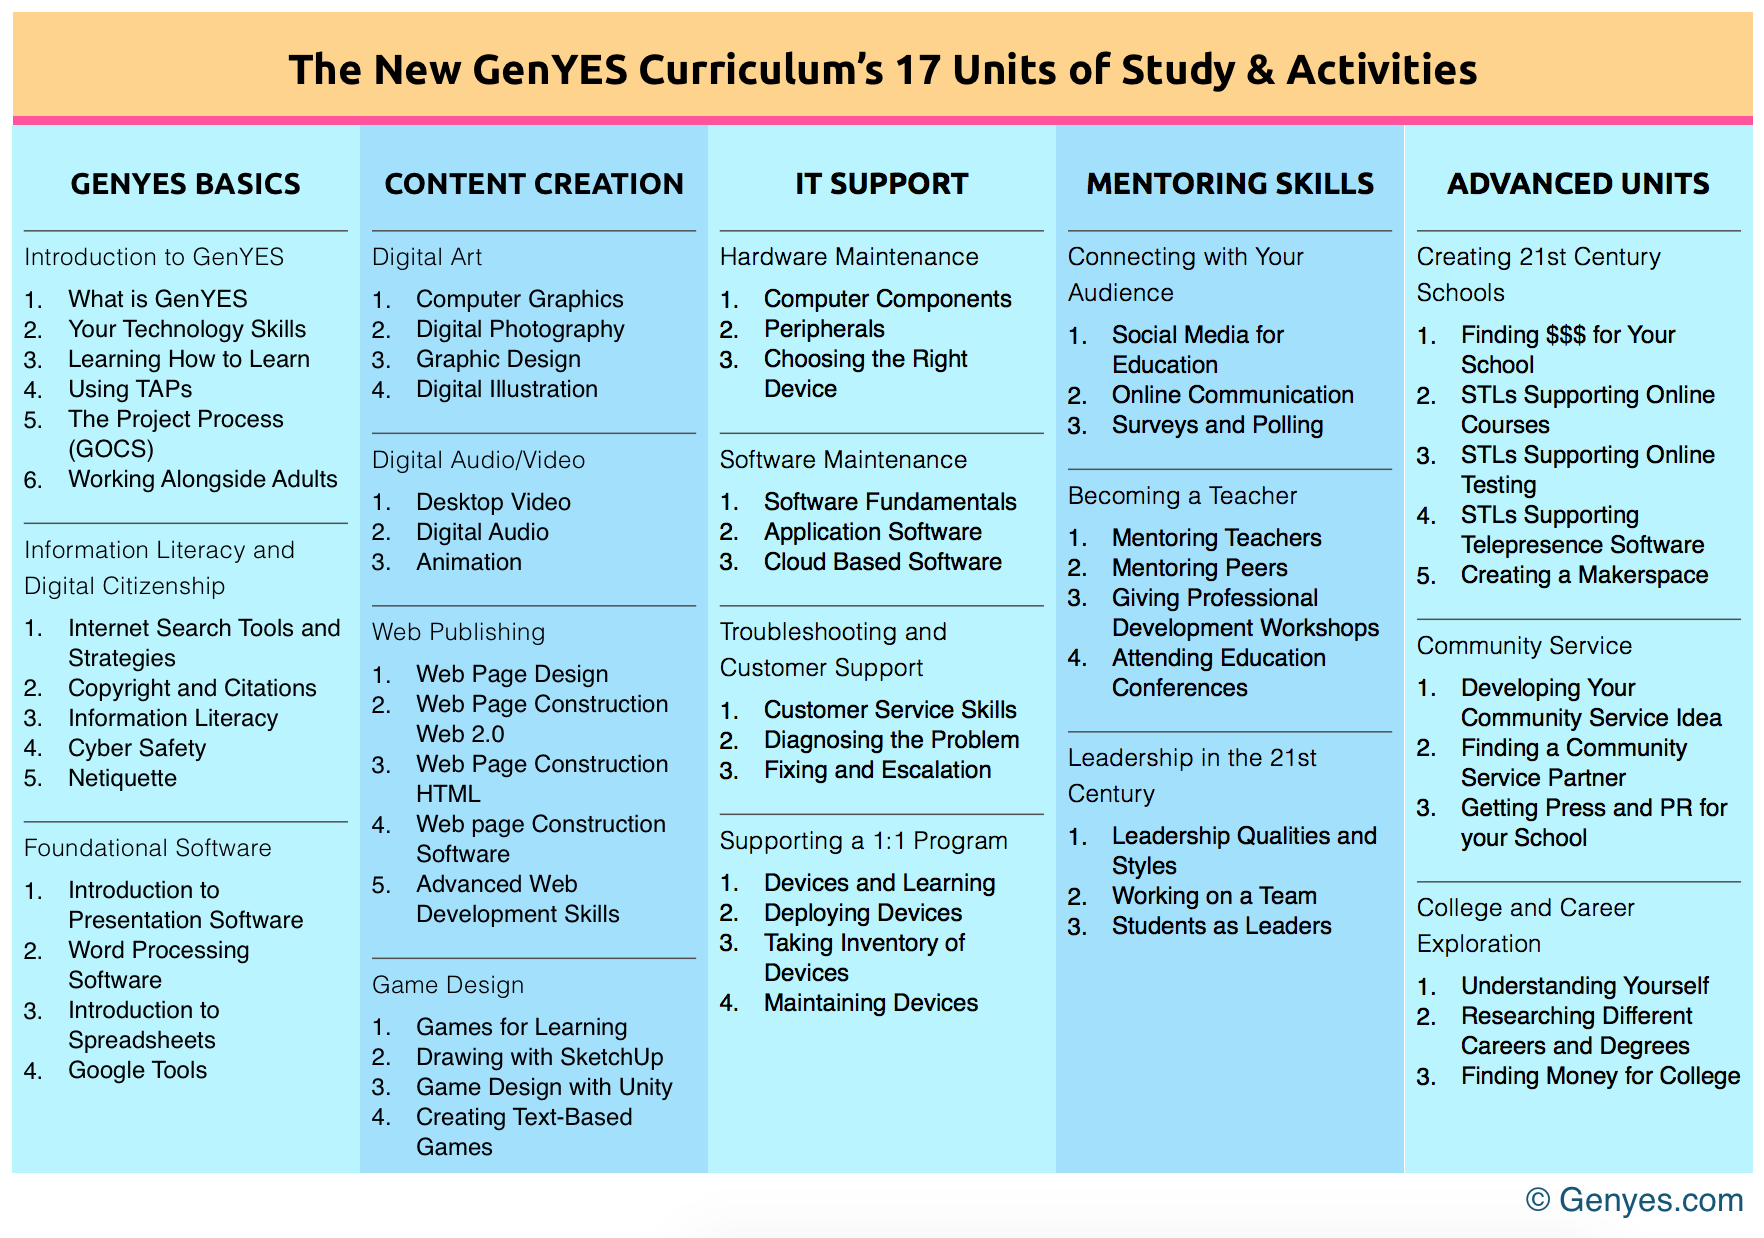 New GenYES Curriculum Units and Activities